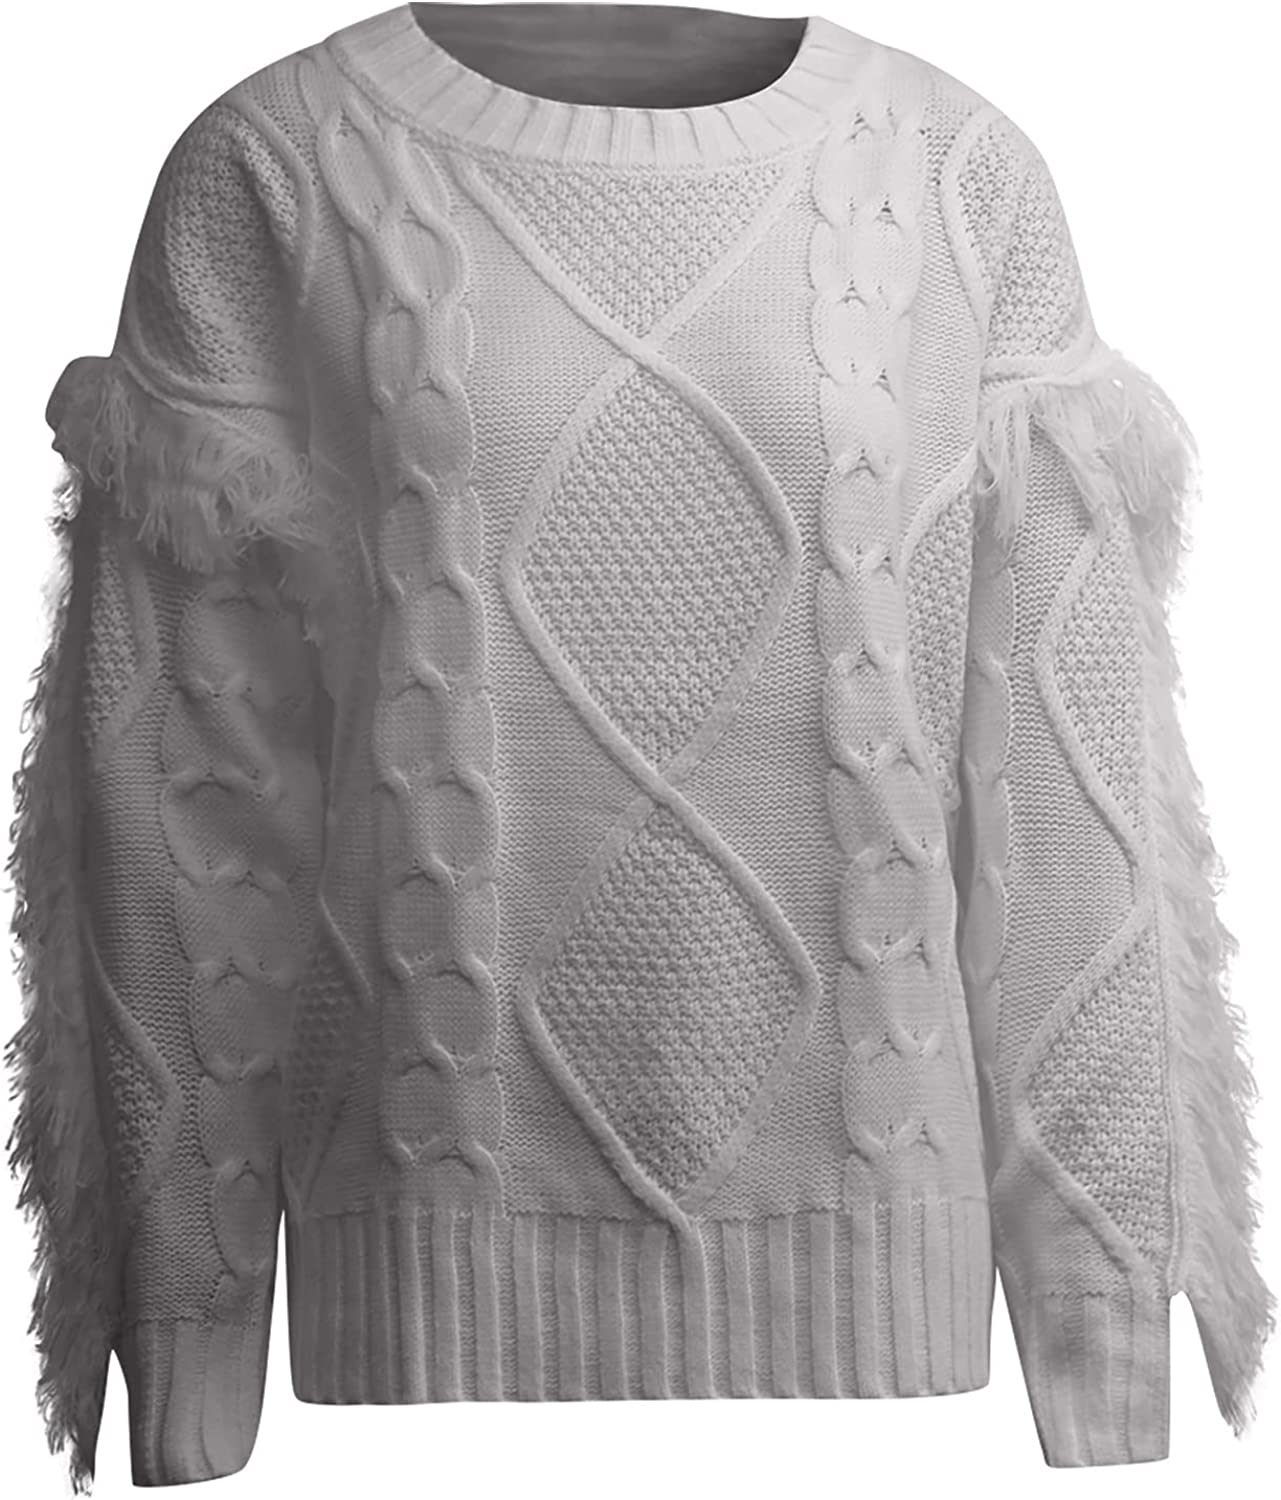 Women's Ribbed Fringe Knitwear Sweater Pullover Sexy Solid Long Sleeve Knitted Sweaters Jumper Blouse Tops